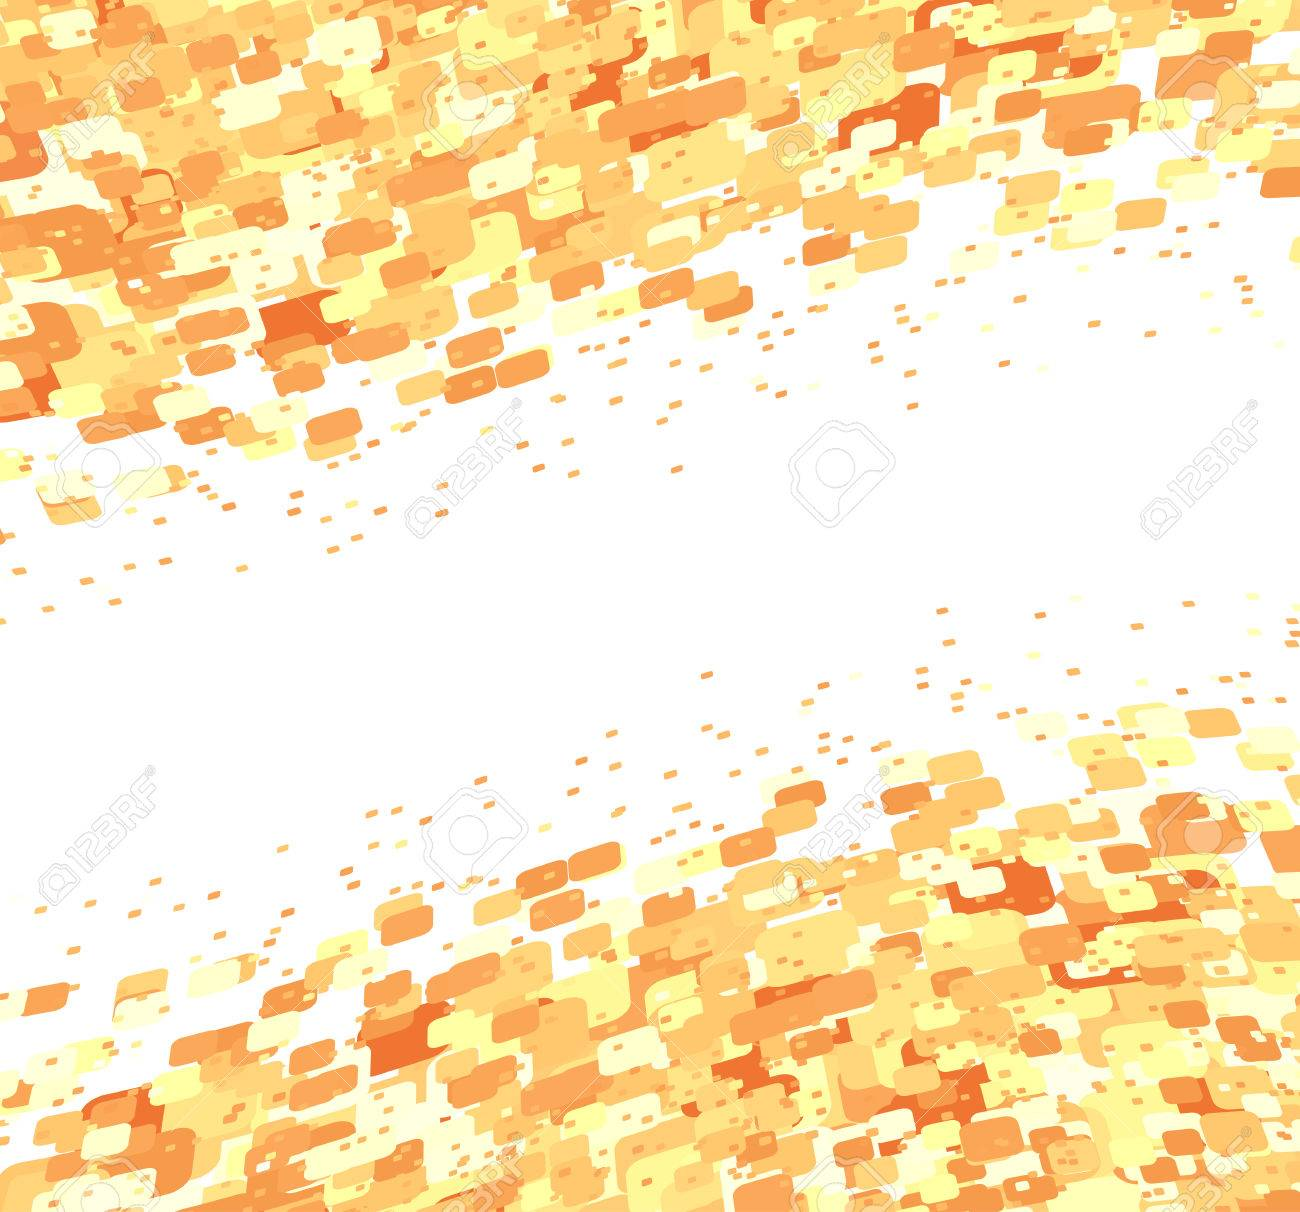 Vector illustration of organic wave surface made of brown squares Stock Vector - 5184794